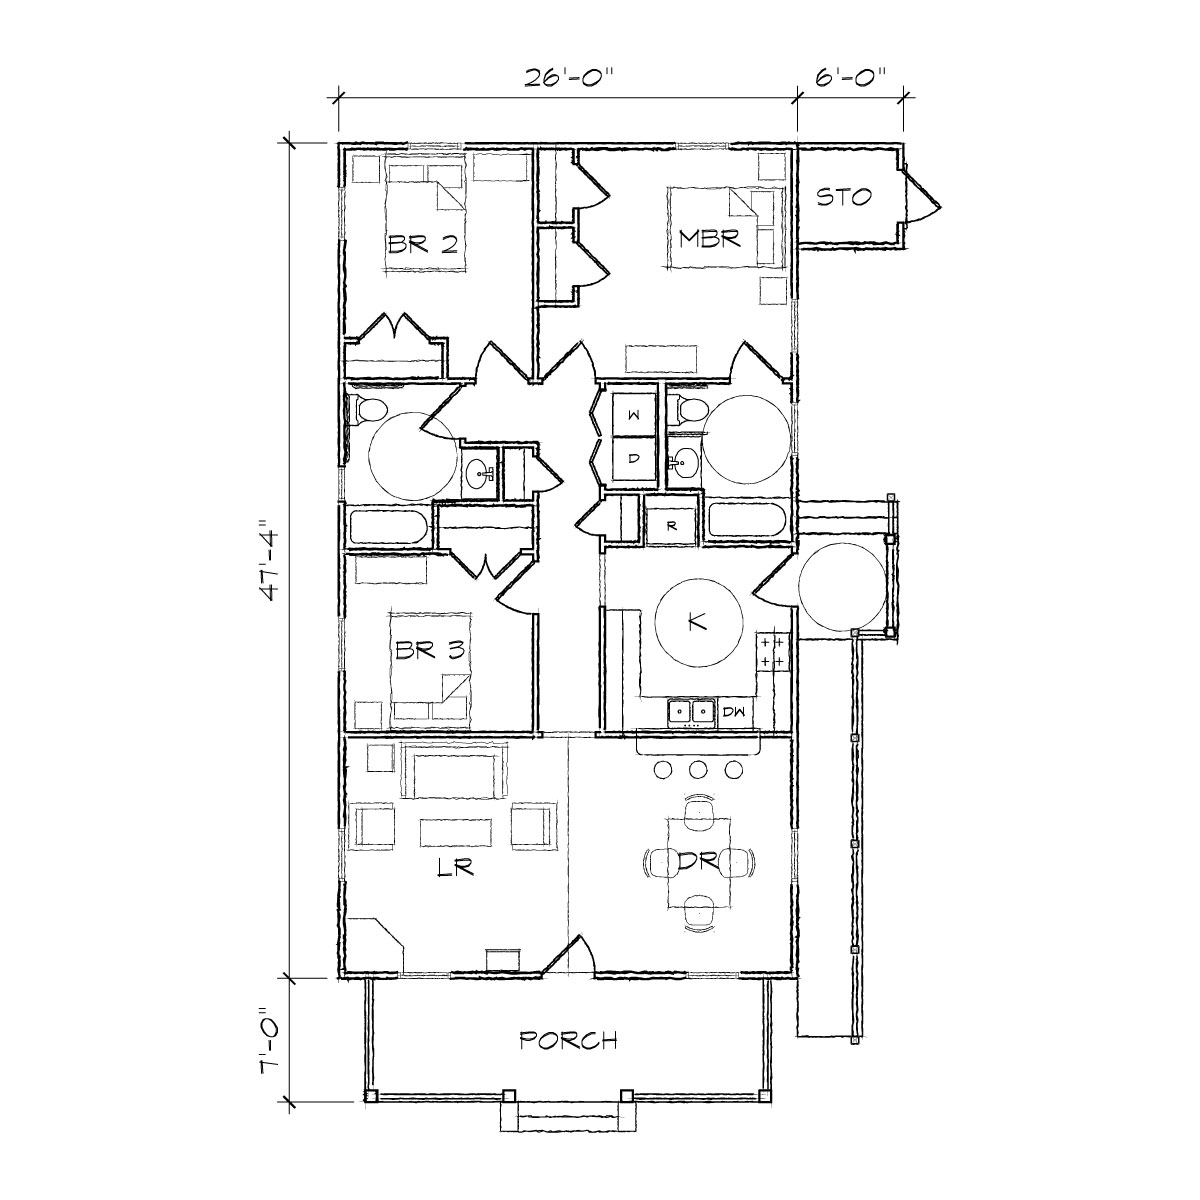 2 bedroom bungalow plans bungalow floor plan floor plan for Bungalow house floor plan philippines